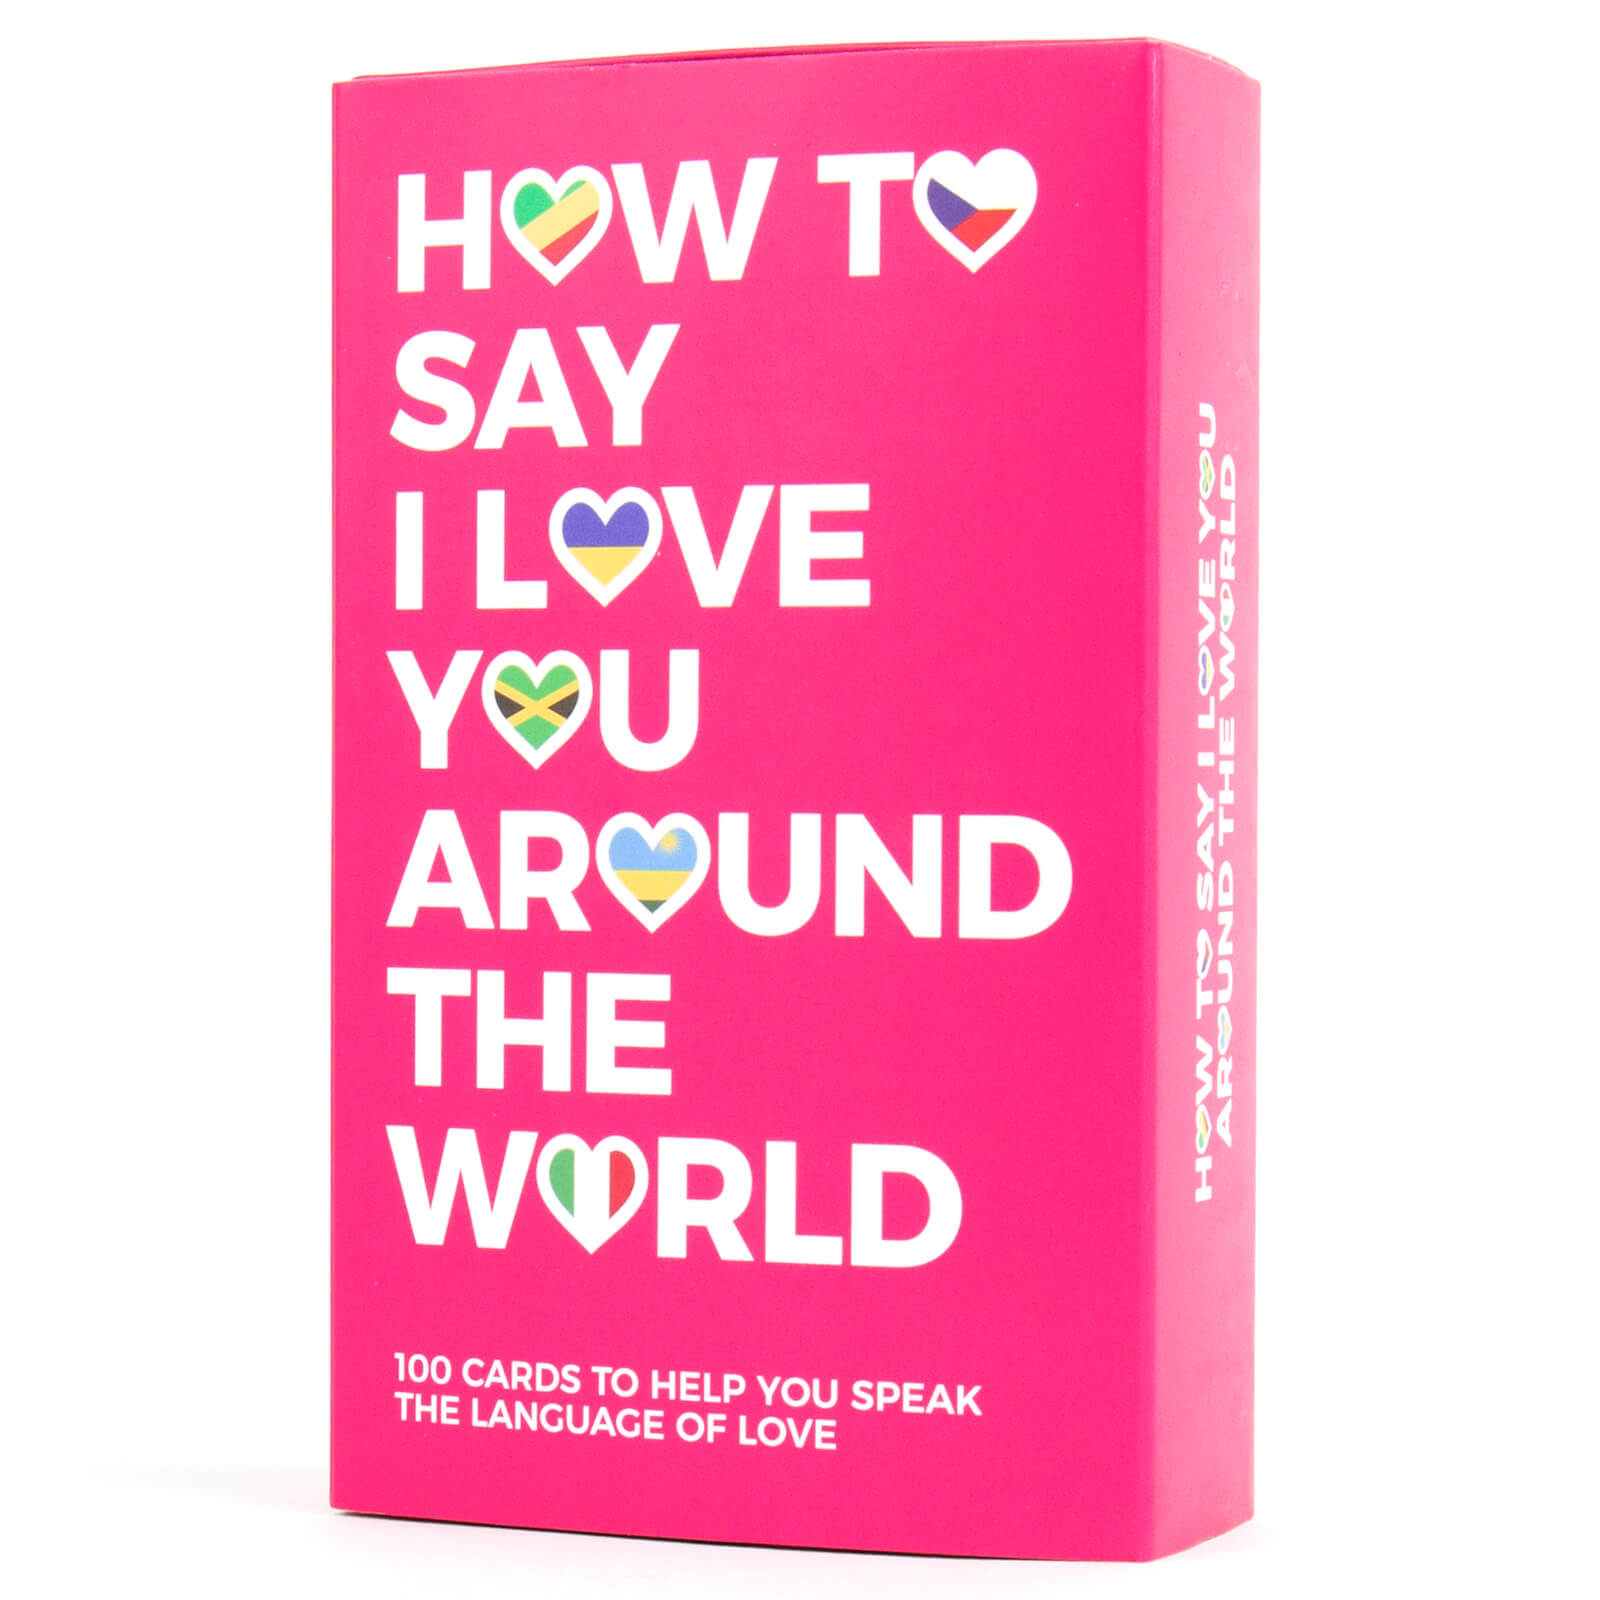 Image of How to Say I Love You Around the World Cards